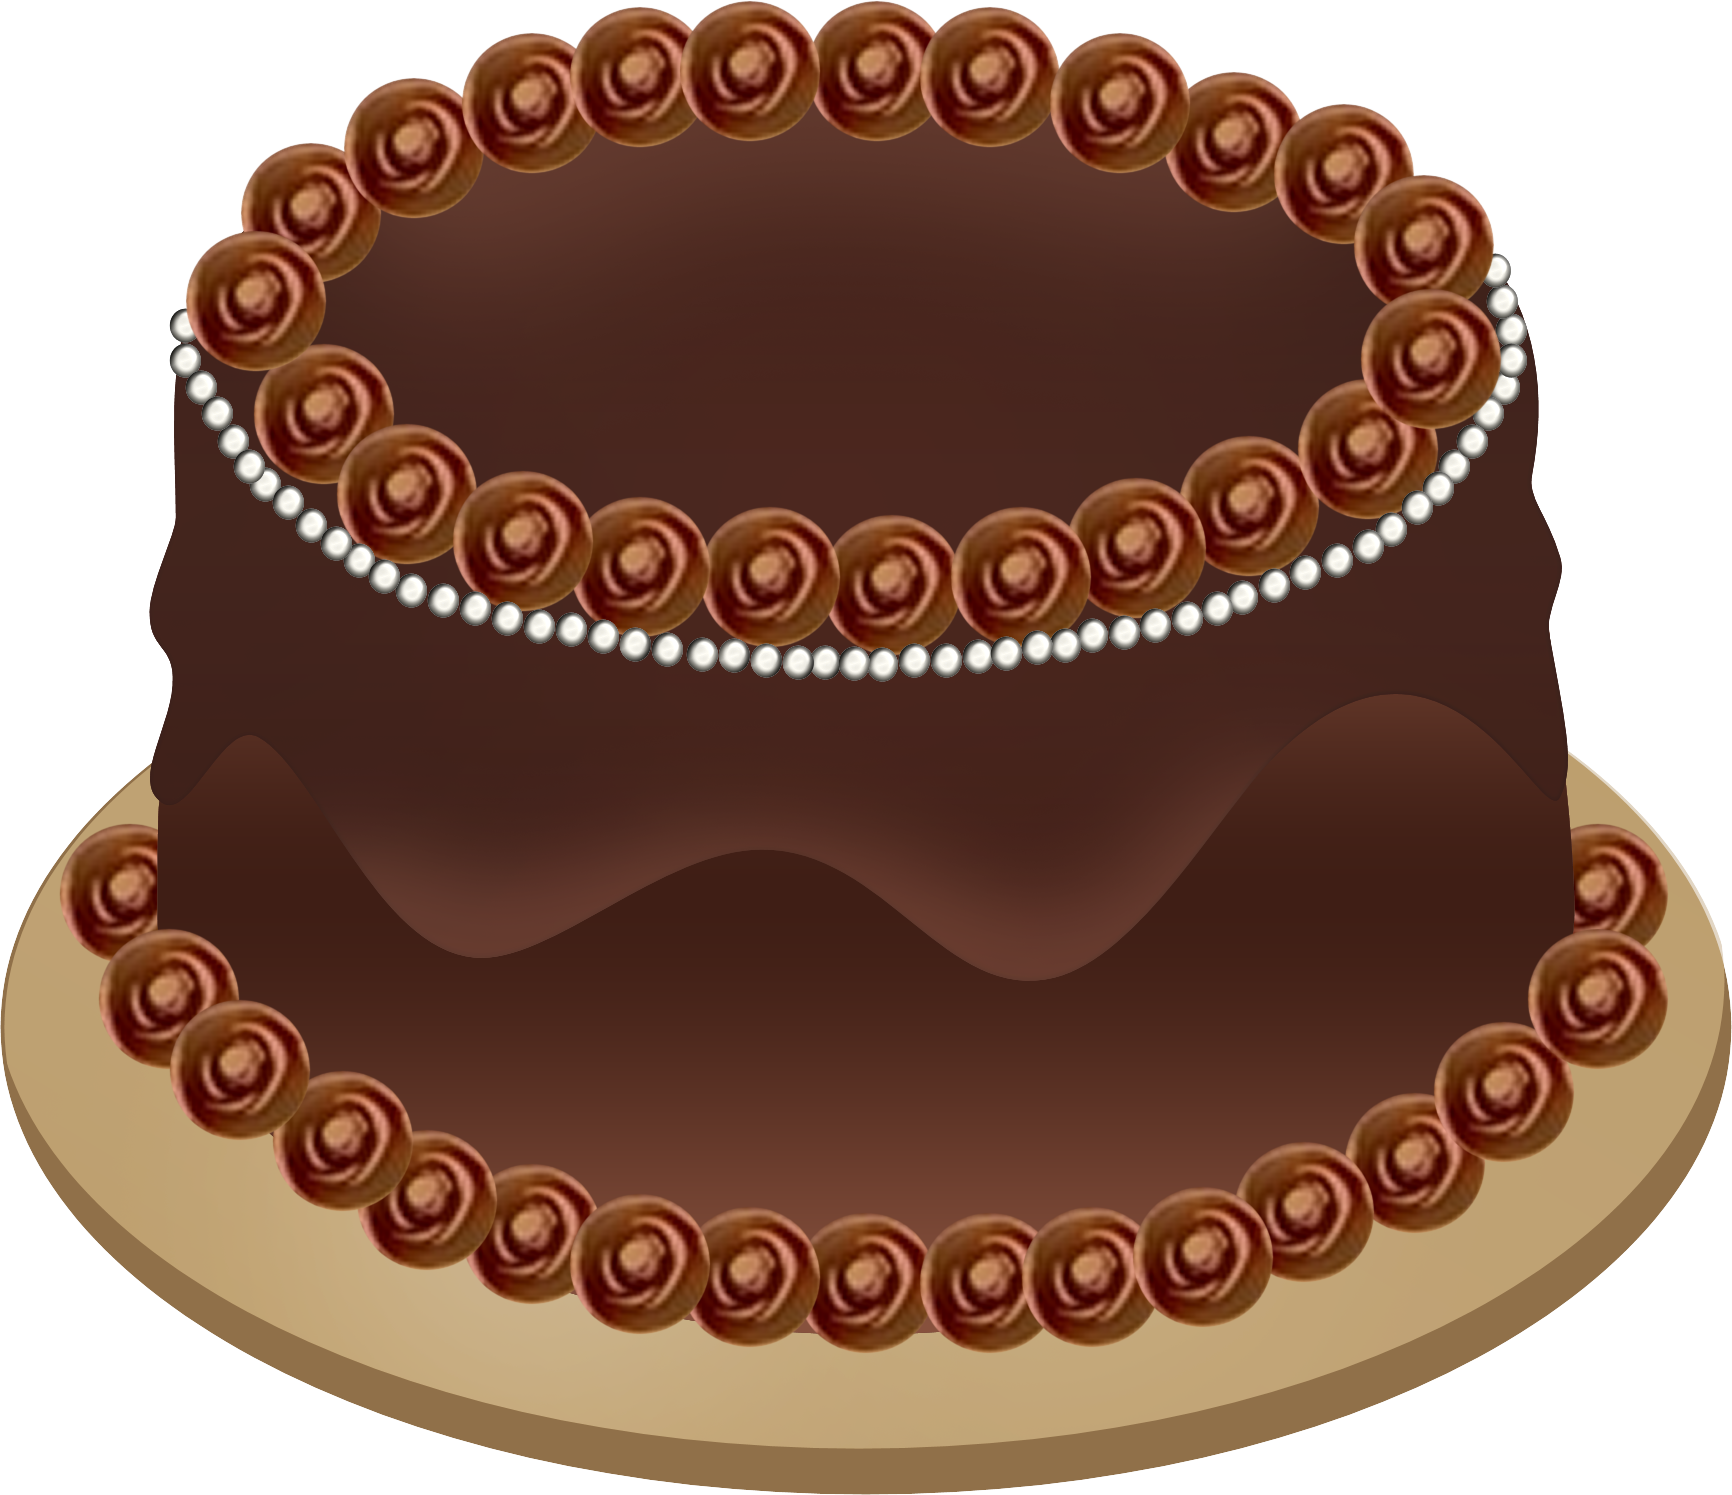 collection of high. Clipart cake german chocolate cake